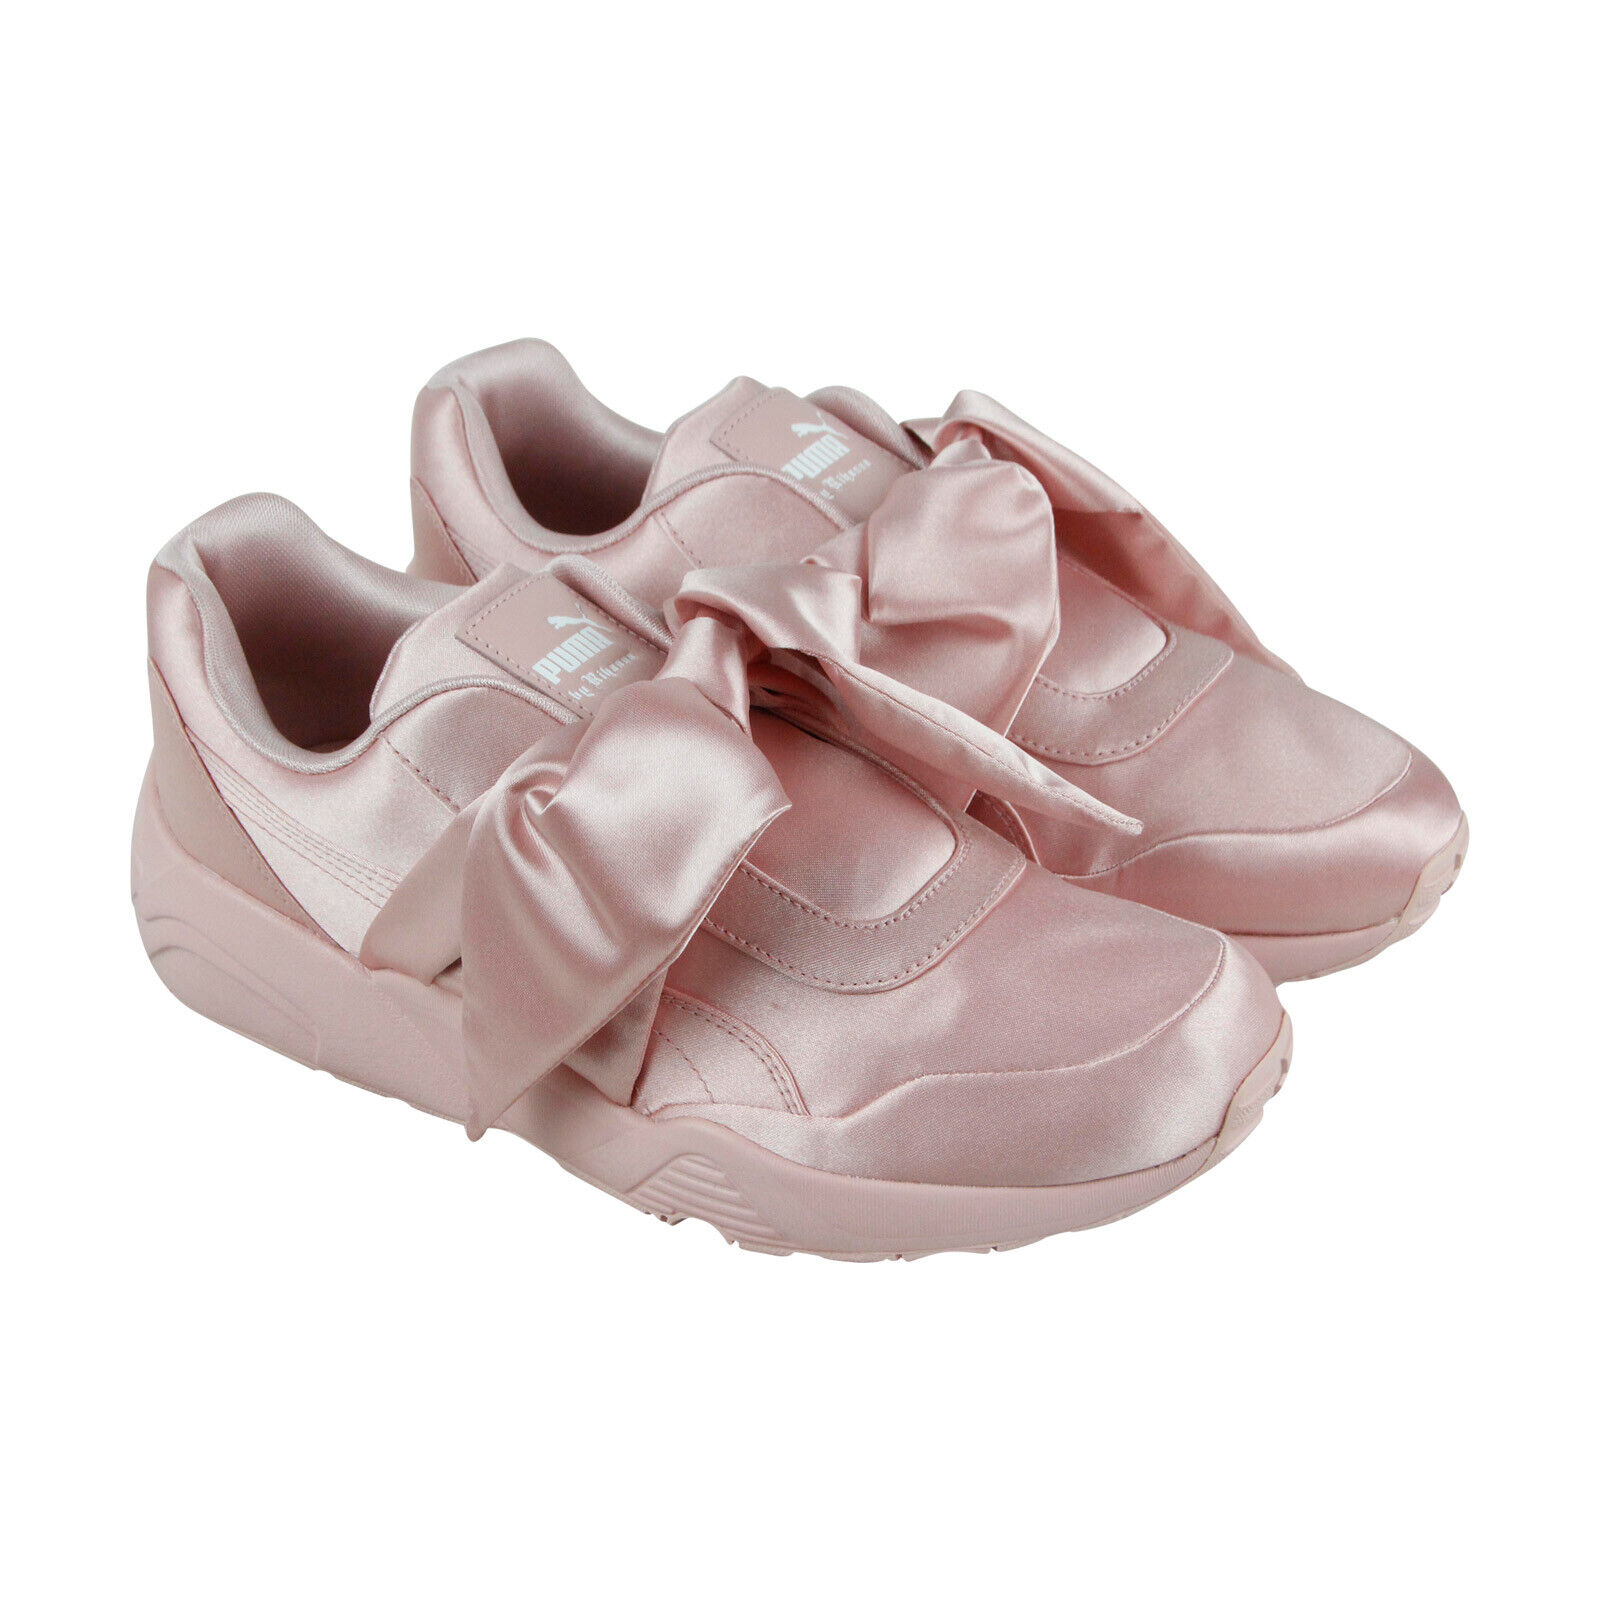 Puma Womens Fenty by Rihanna Riri Pink Bow Sneaker 36505401 Sneakers Shoes